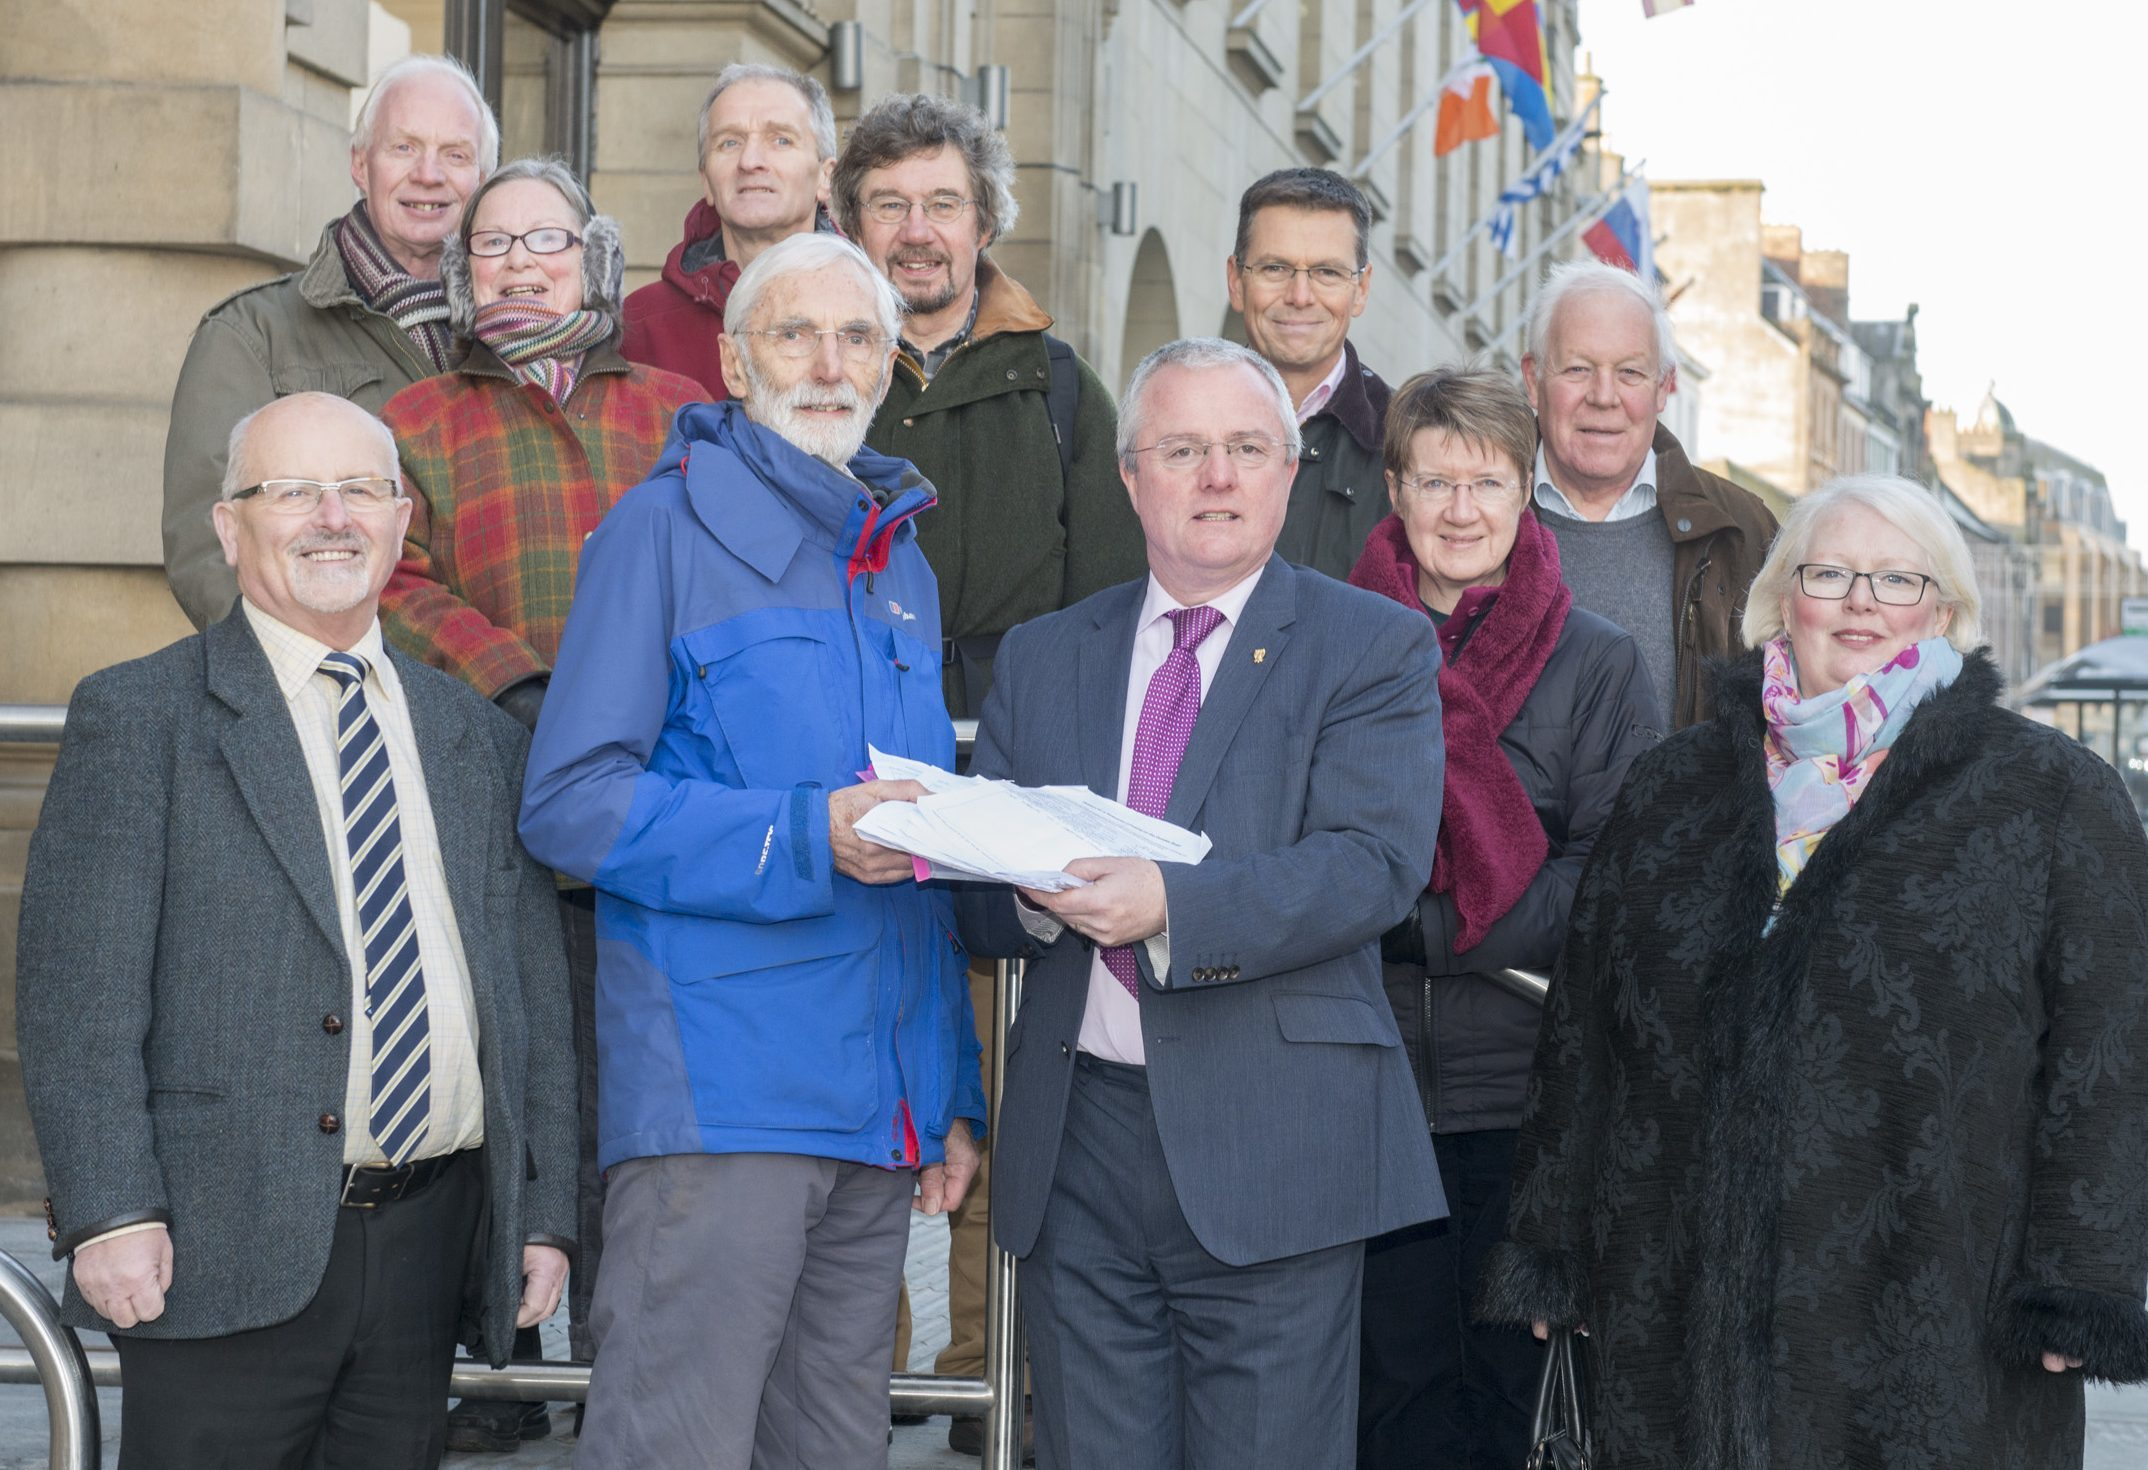 Dr Jim Young, centre, handing the Dundee Road traffic light petition to councillor Peter Barrett